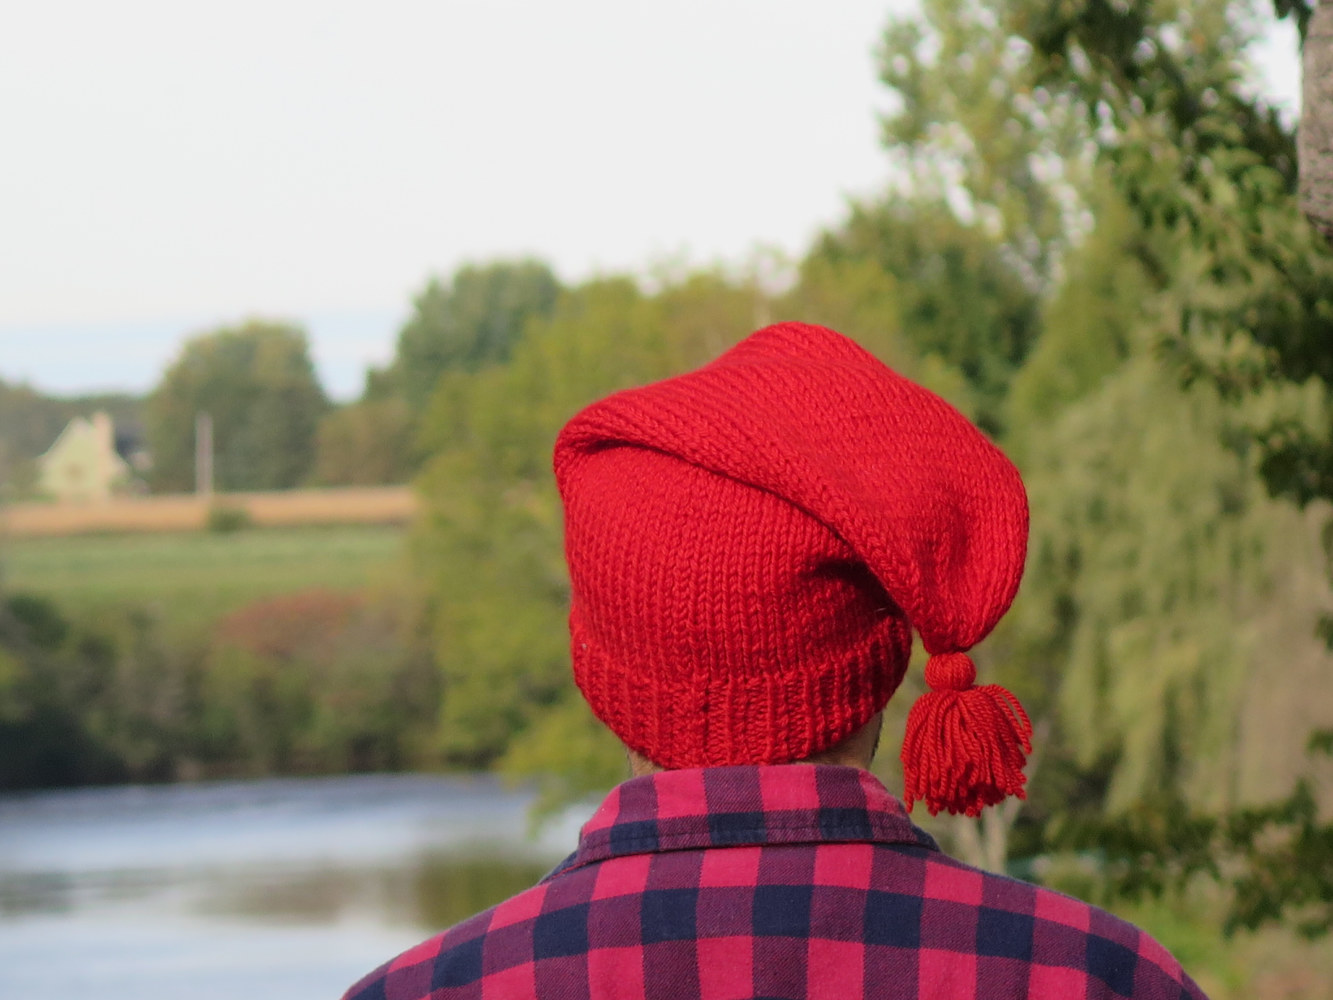 Tuque de patriote rouge pure laine avec pompon Red wool liberty hat - Red liberty hat - Wool liberty cap by Genevieve Desy